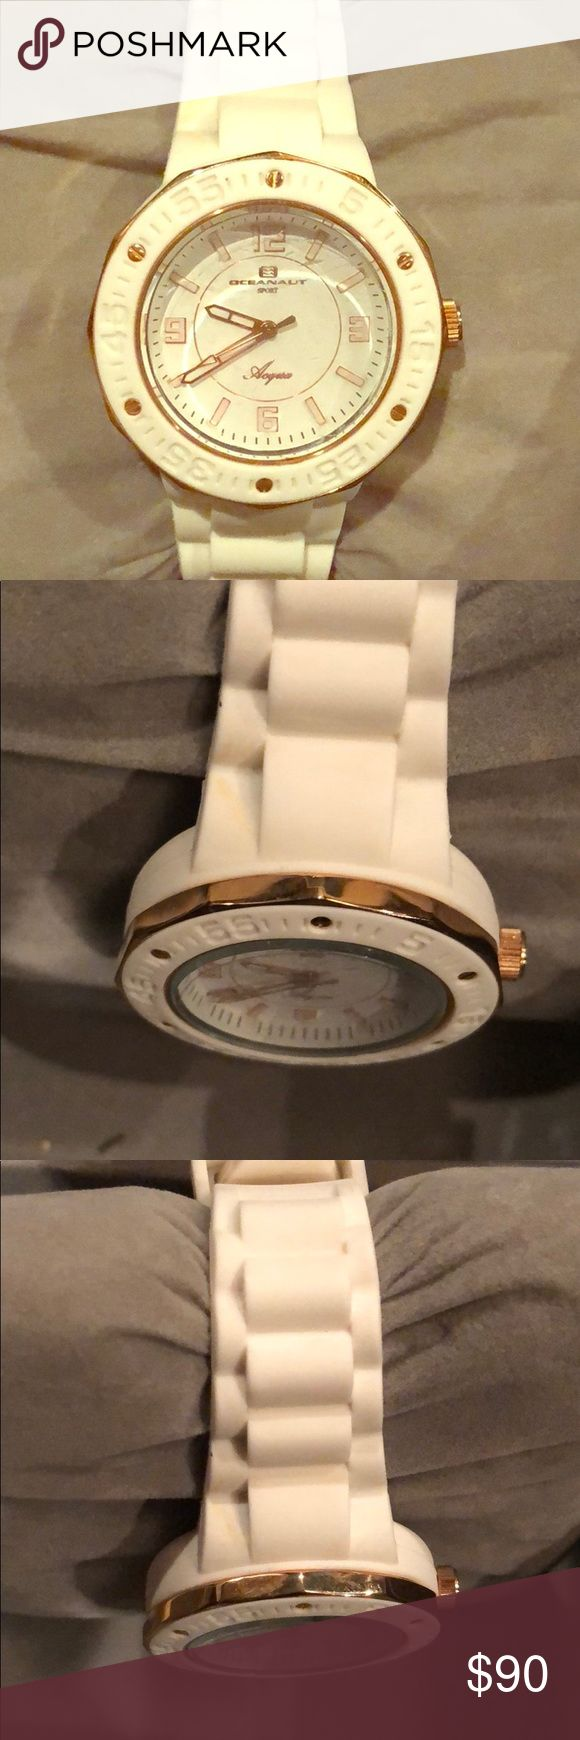 Oceanuat Women's white and gold rubber watch o/s New in box a beautiful silicone band white and gold watch.  Plastic cover on face dial.   This beautiful everyday fashionable watch will be the perfect addition to your collection ! Oceanaut Accessories Watches